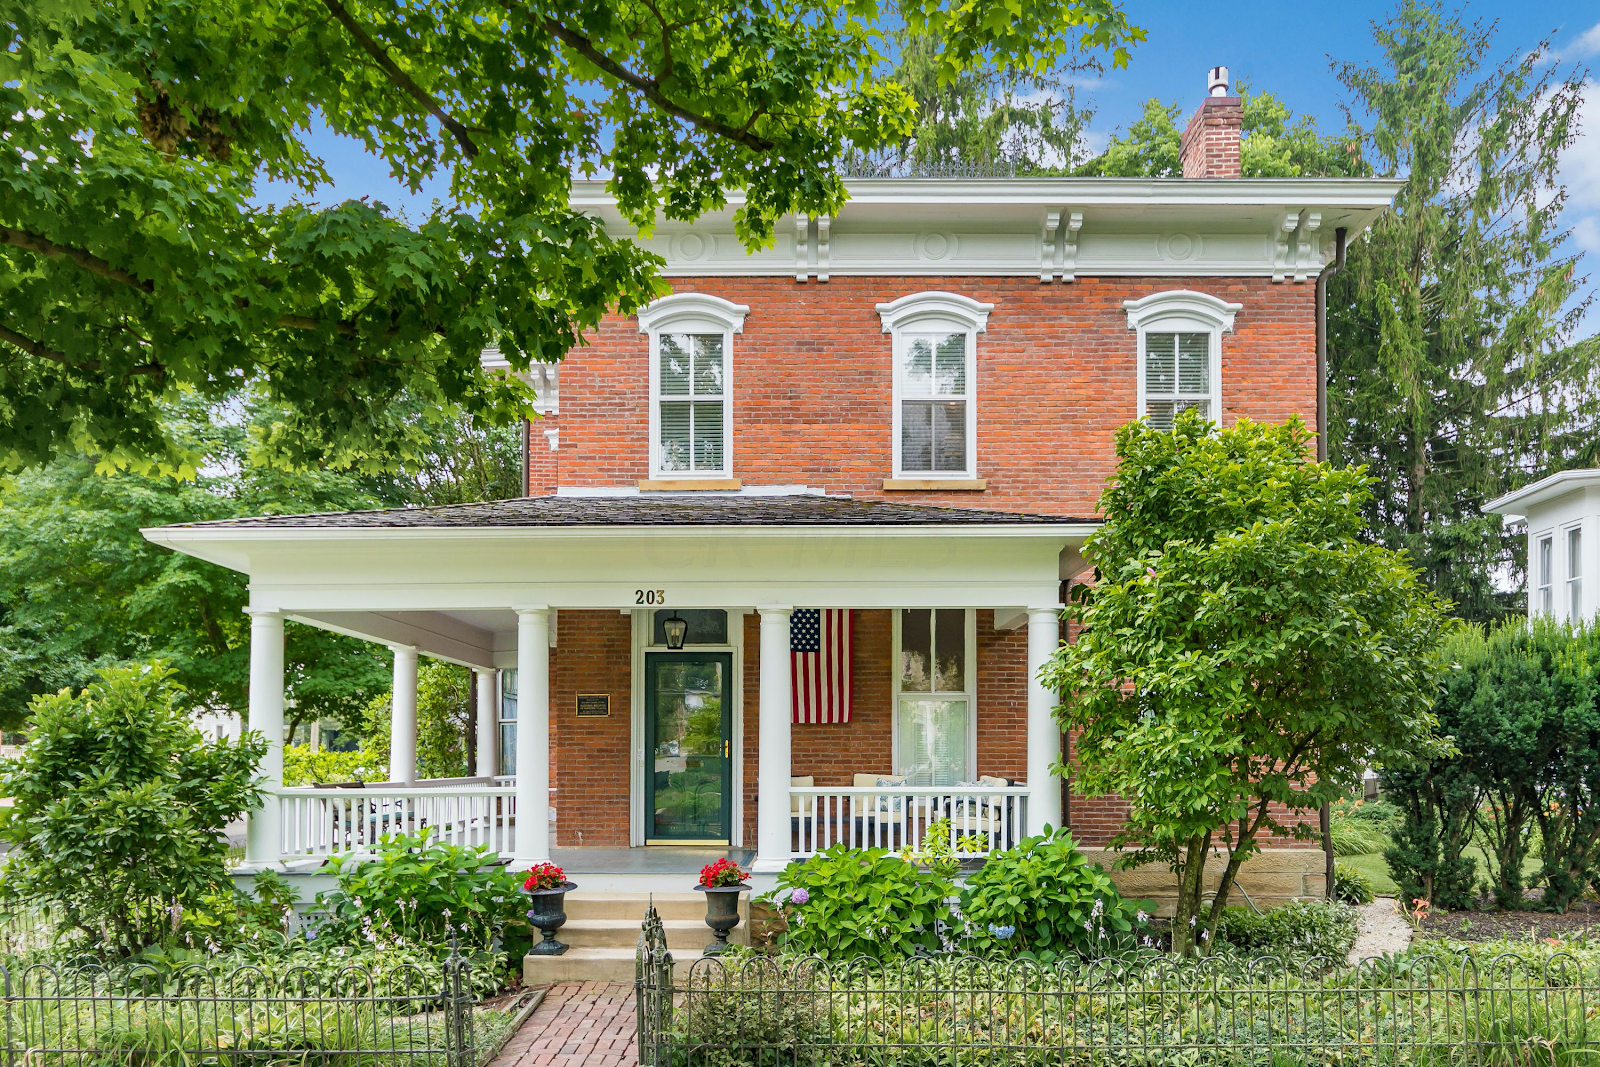 beautiful historical home located on West Broadway in Granville